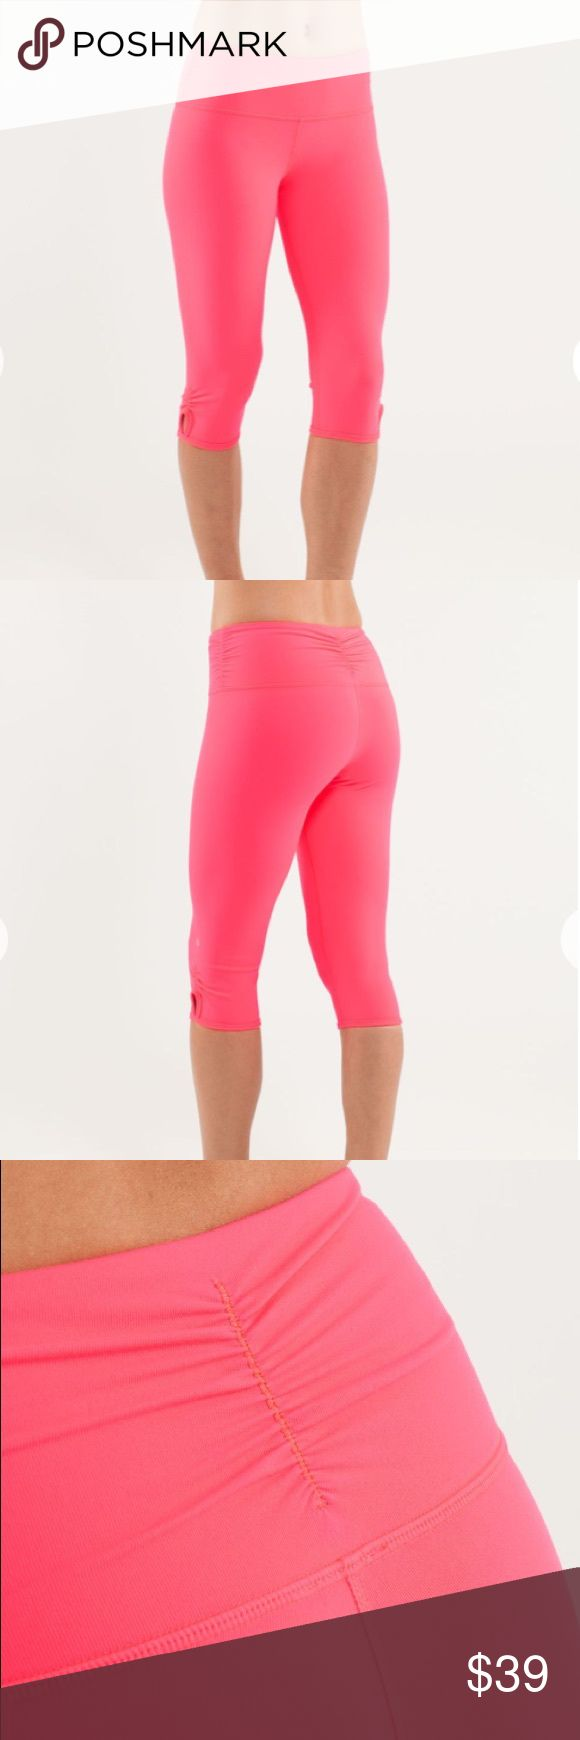 Lululemon Crops Dhanurasana Crop in Flash. Hidden waistband pocket. Shows minor signs of wear but no major pilling and no snags. No cracking on logo. Light purple mark near crotch but not very noticeable (see last pic). First three photos are stock pics. lululemon athletica Pants Leggings